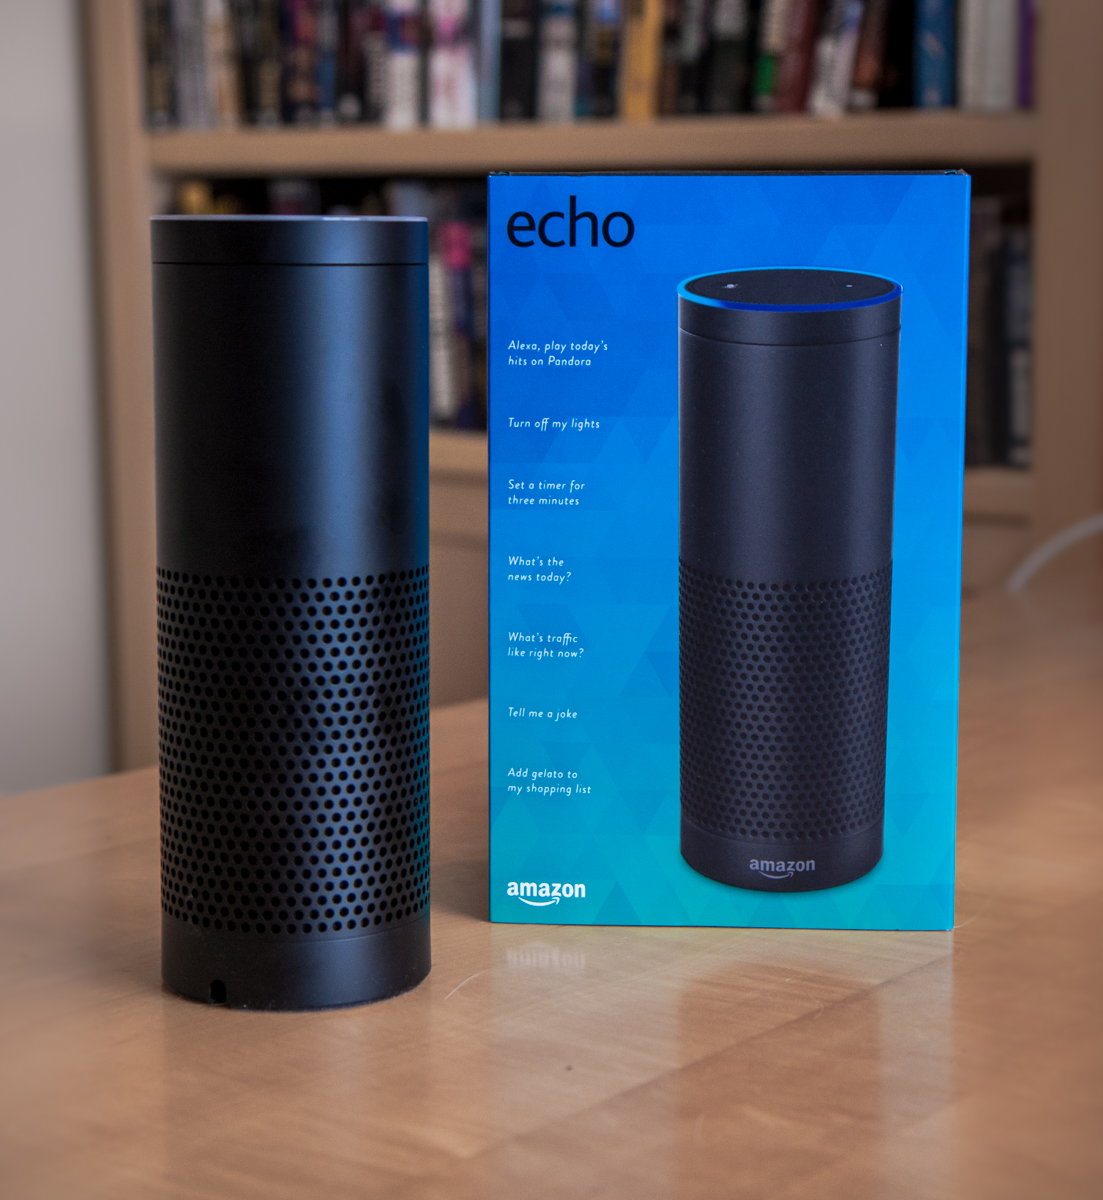 Since Alexa Currently Does Not Provide Feedback As To What Smart Home  Automation Devices Actually End Up Getting Controlled With Any Given Mand,